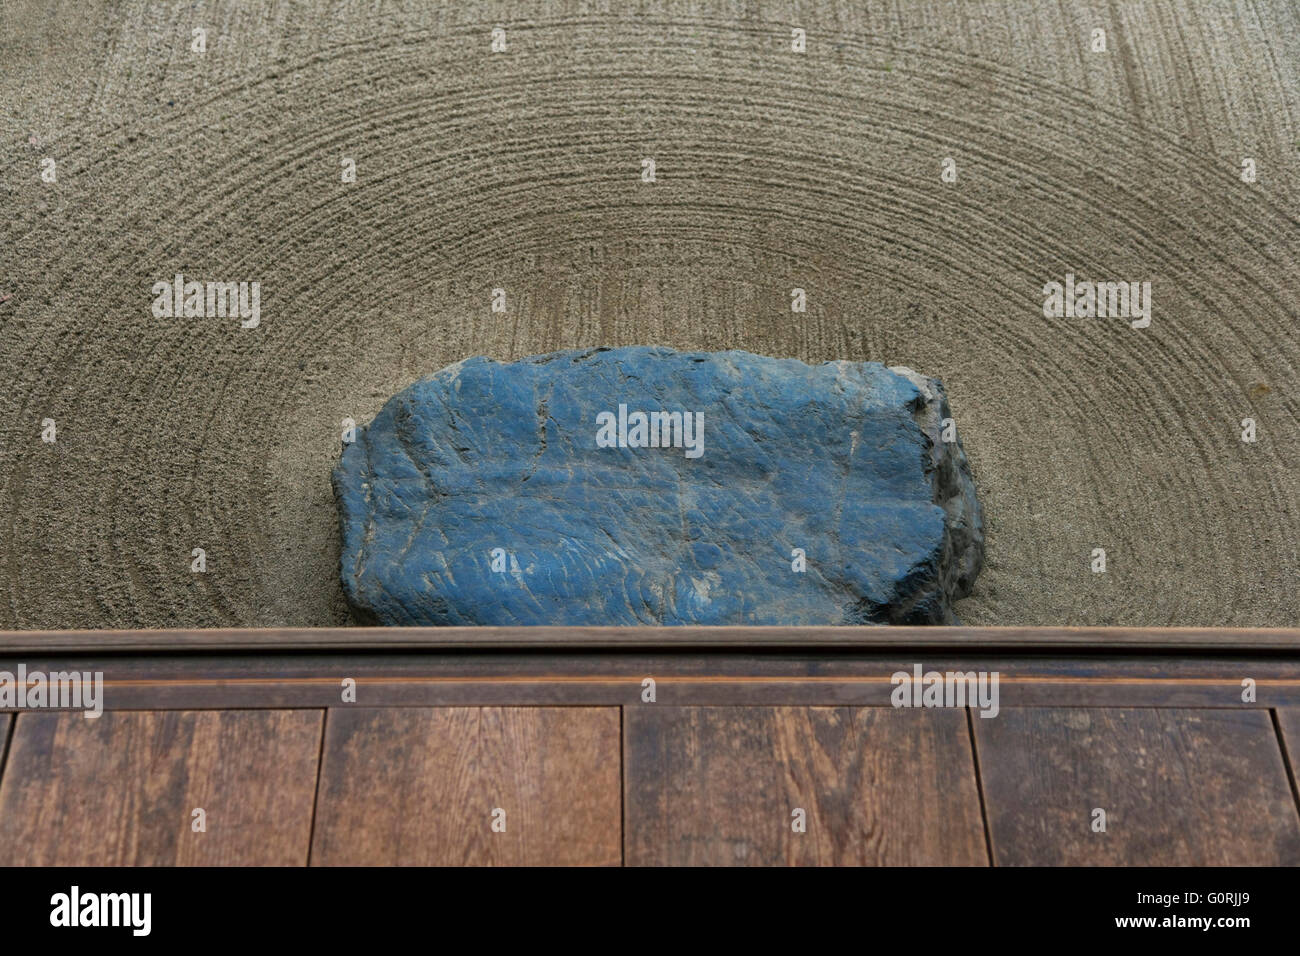 A detailed view shows a shoe-removing stone in the carefully raked sand below the wooden engawa veranda at the edge - Stock Image